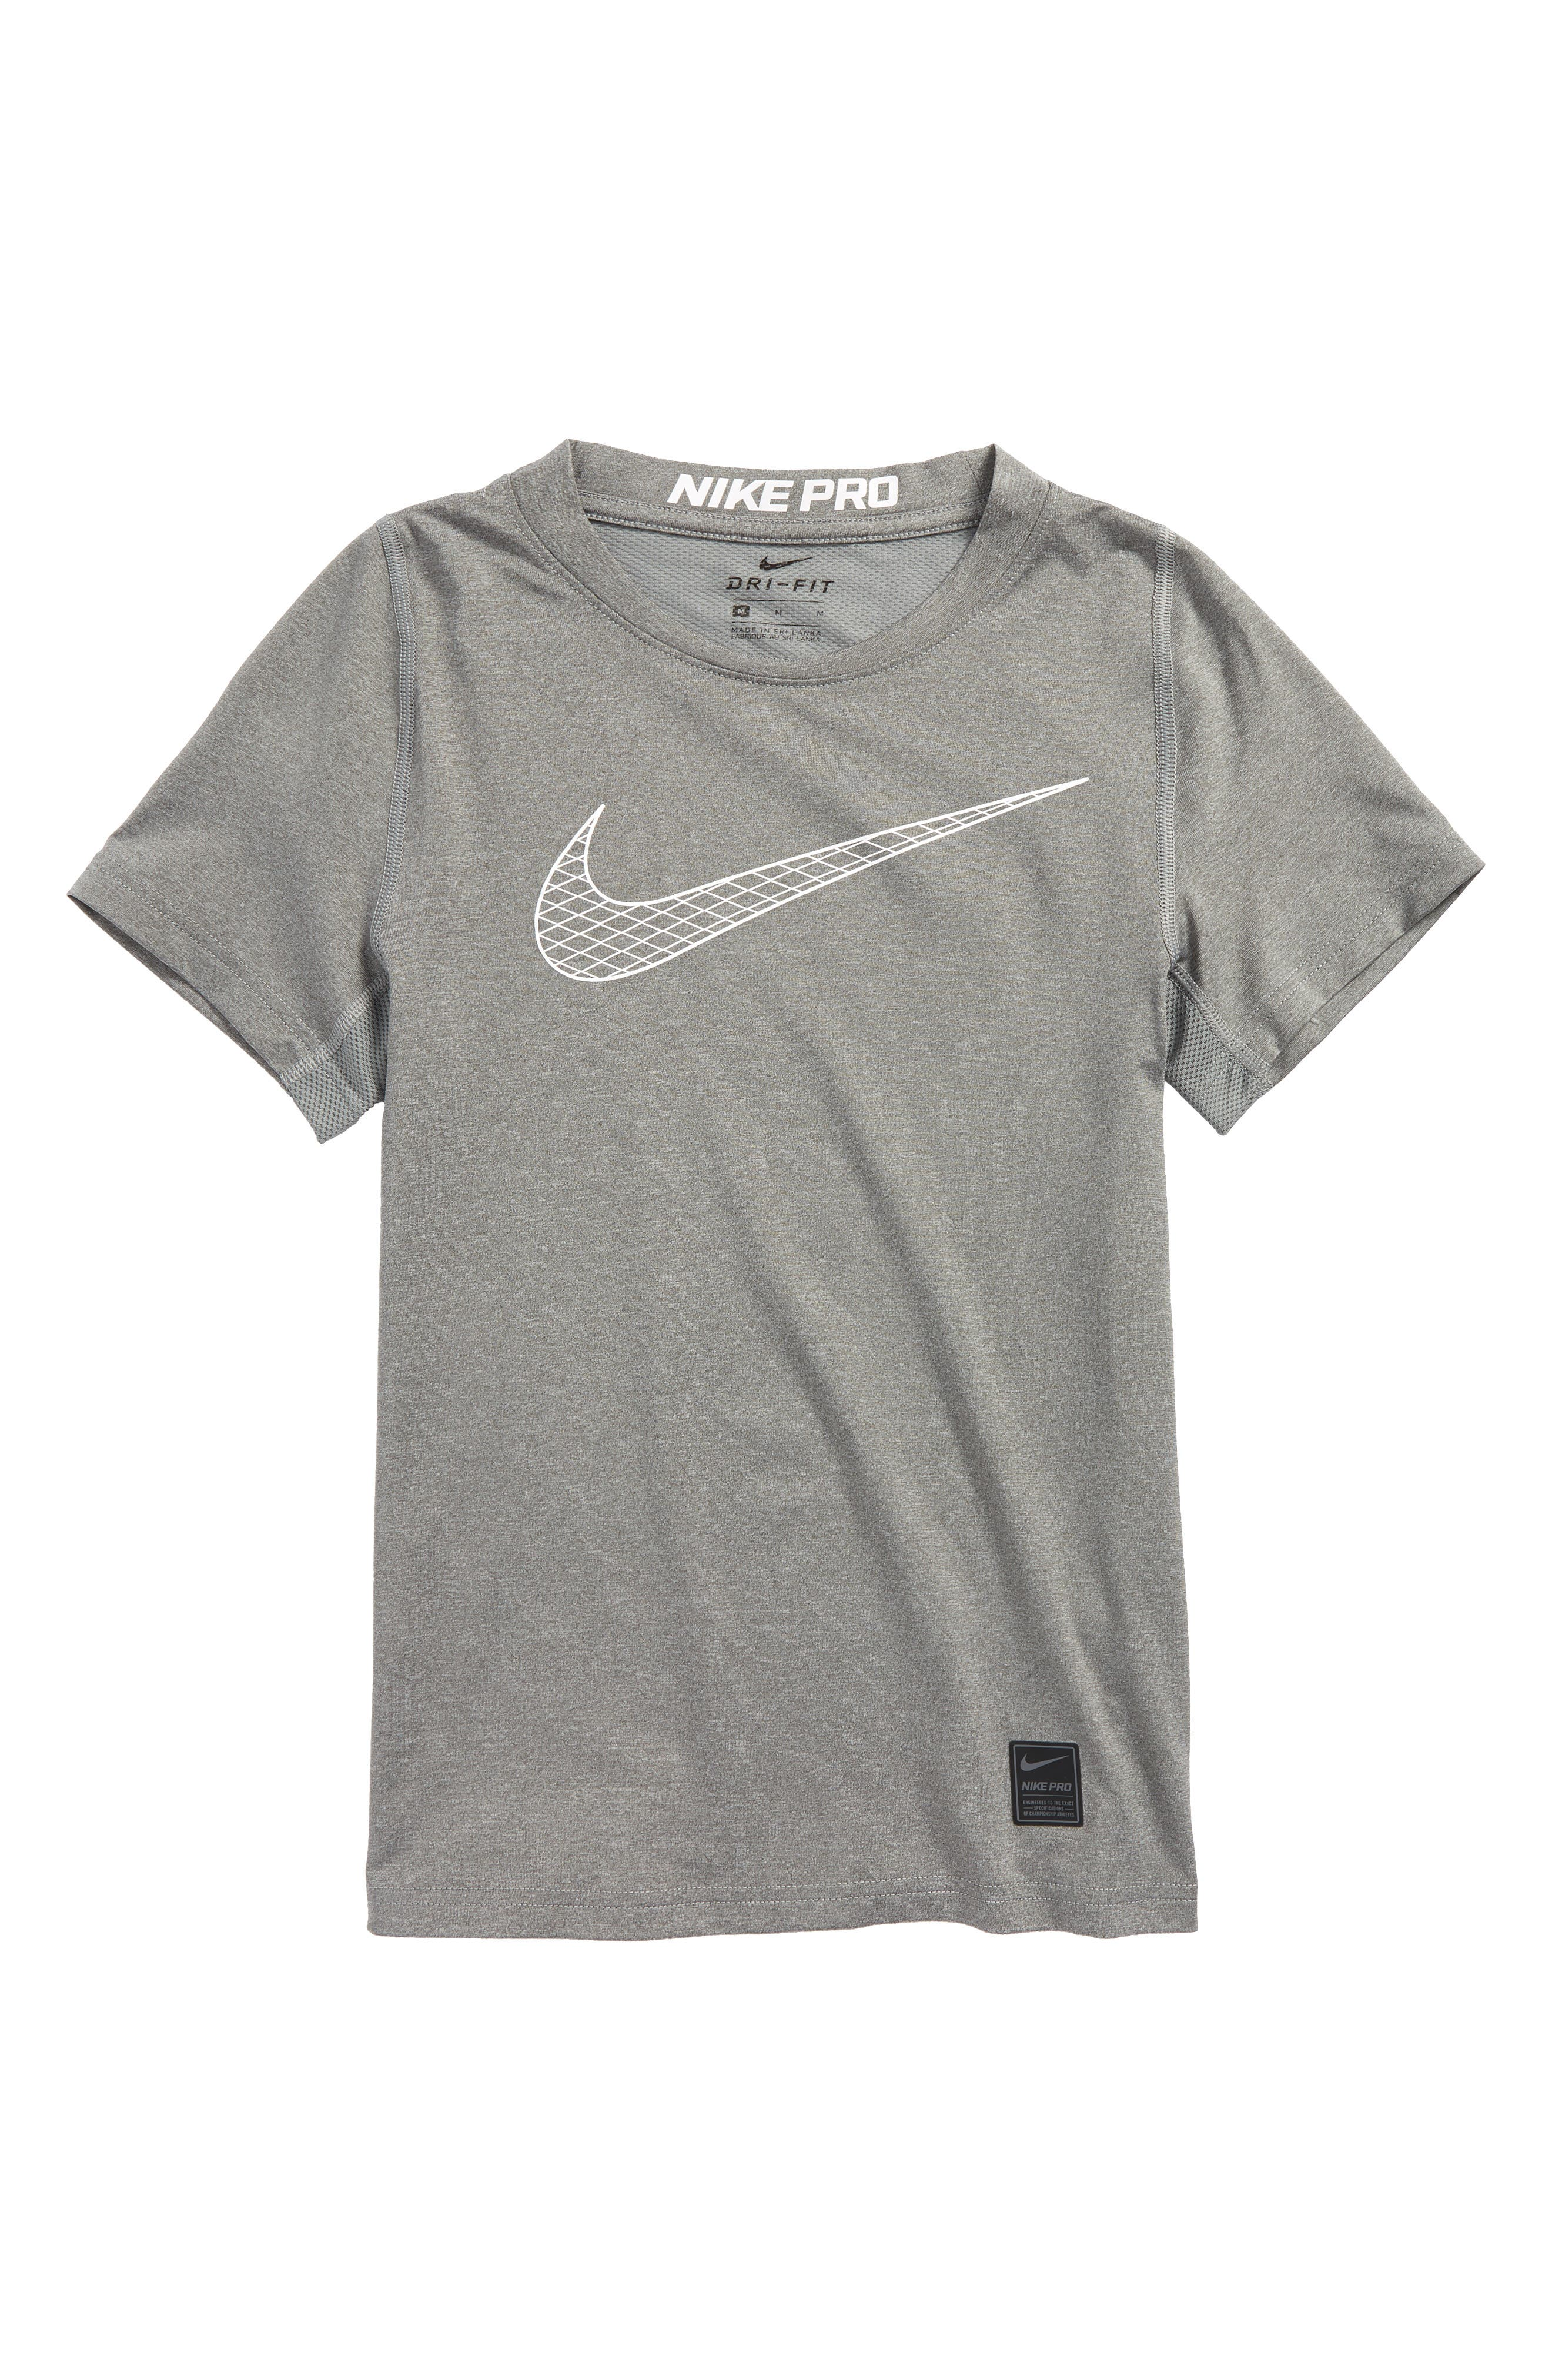 Pro Fitted Training Top,                             Main thumbnail 1, color,                             Carbon Heather/ White